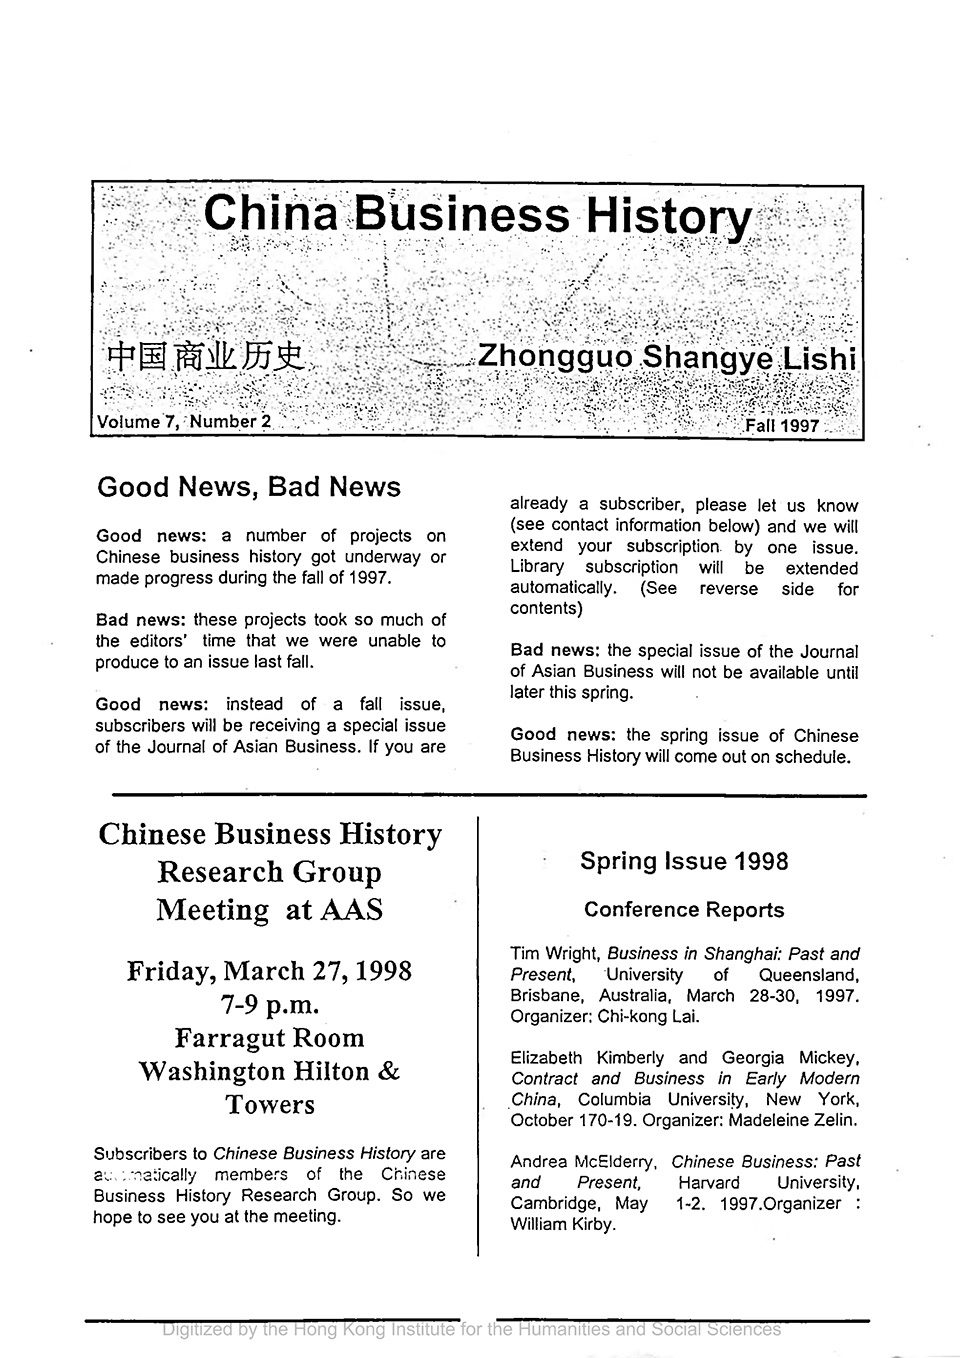 Cover of Chinese Business History Journal Volume 7, Number 2